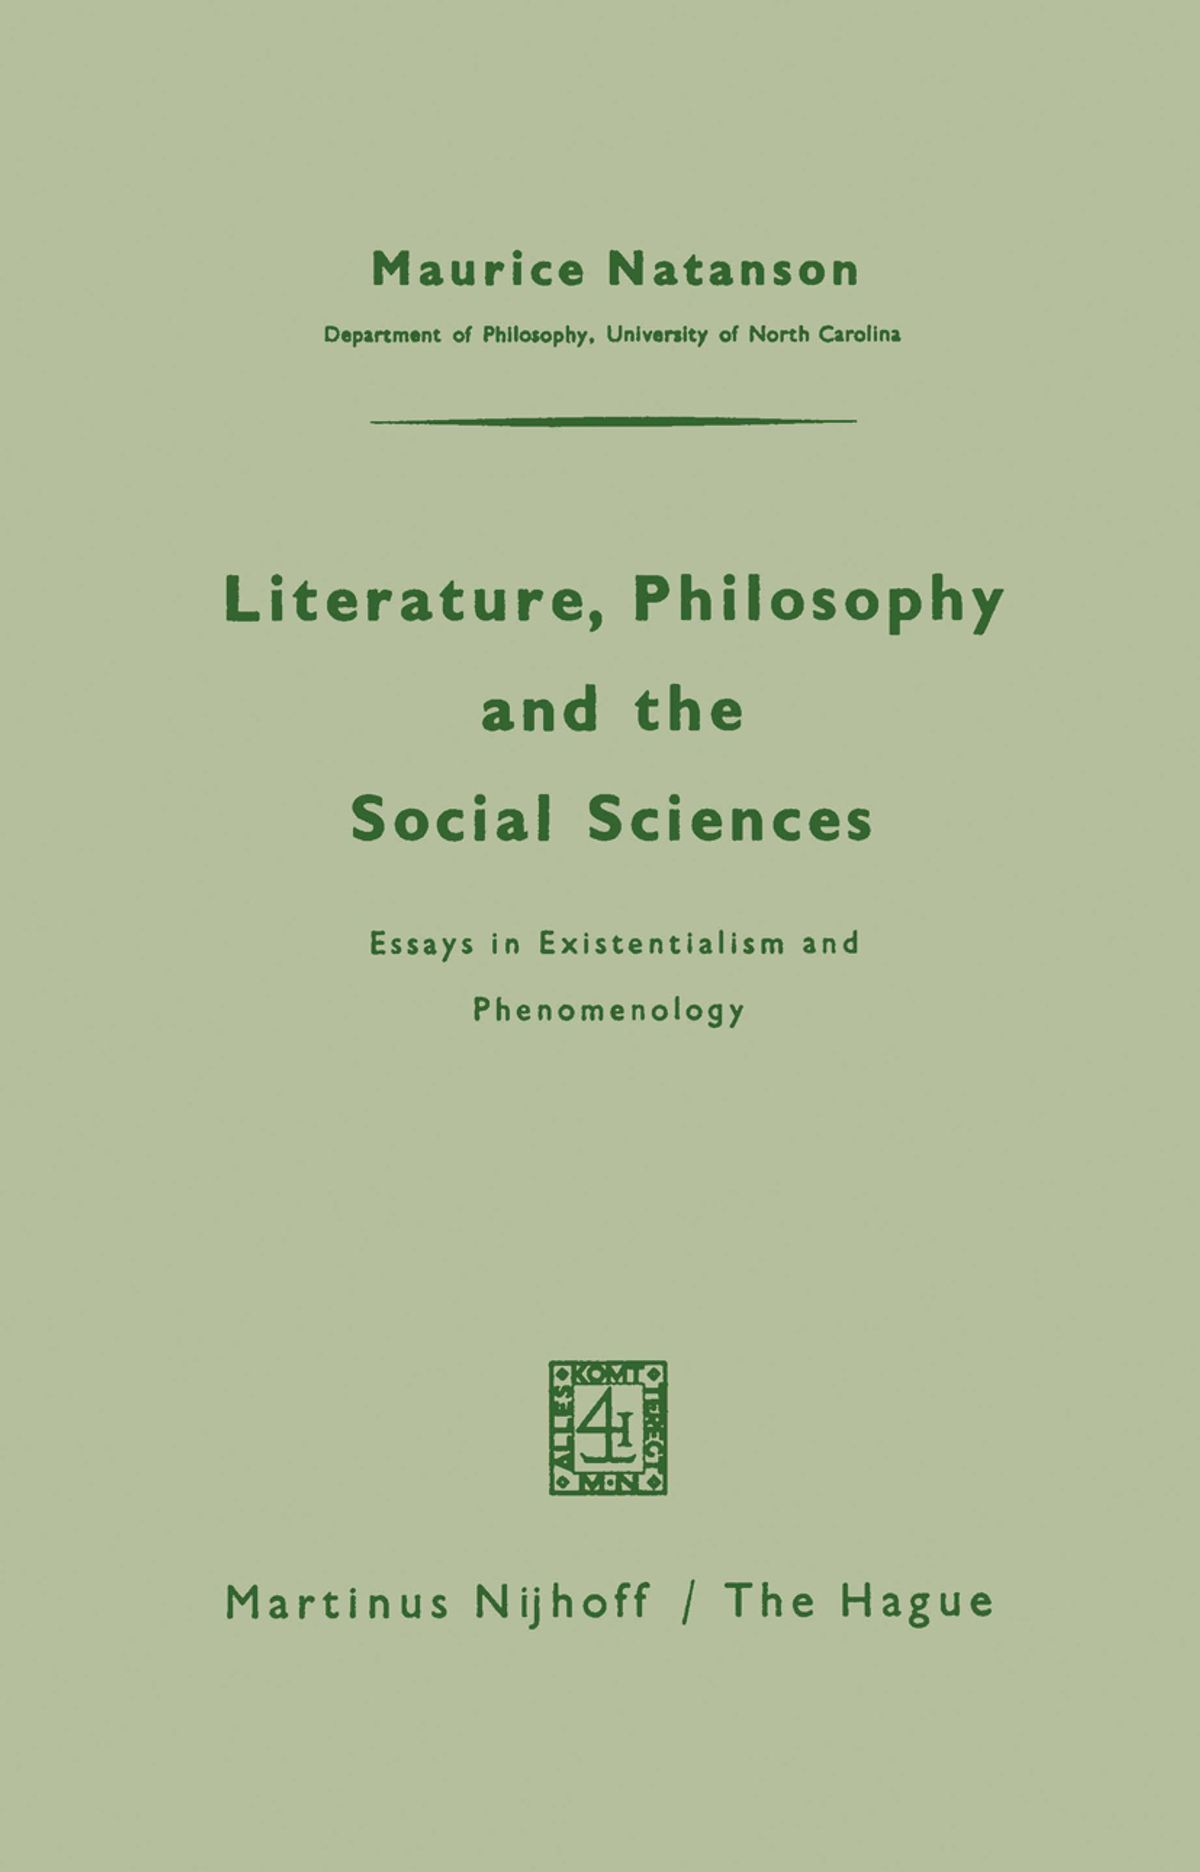 009 Literature Philosophy And The Social Sciences Essay Example Essays In Outstanding Existentialism Sartre Pdf Jean Paul Full